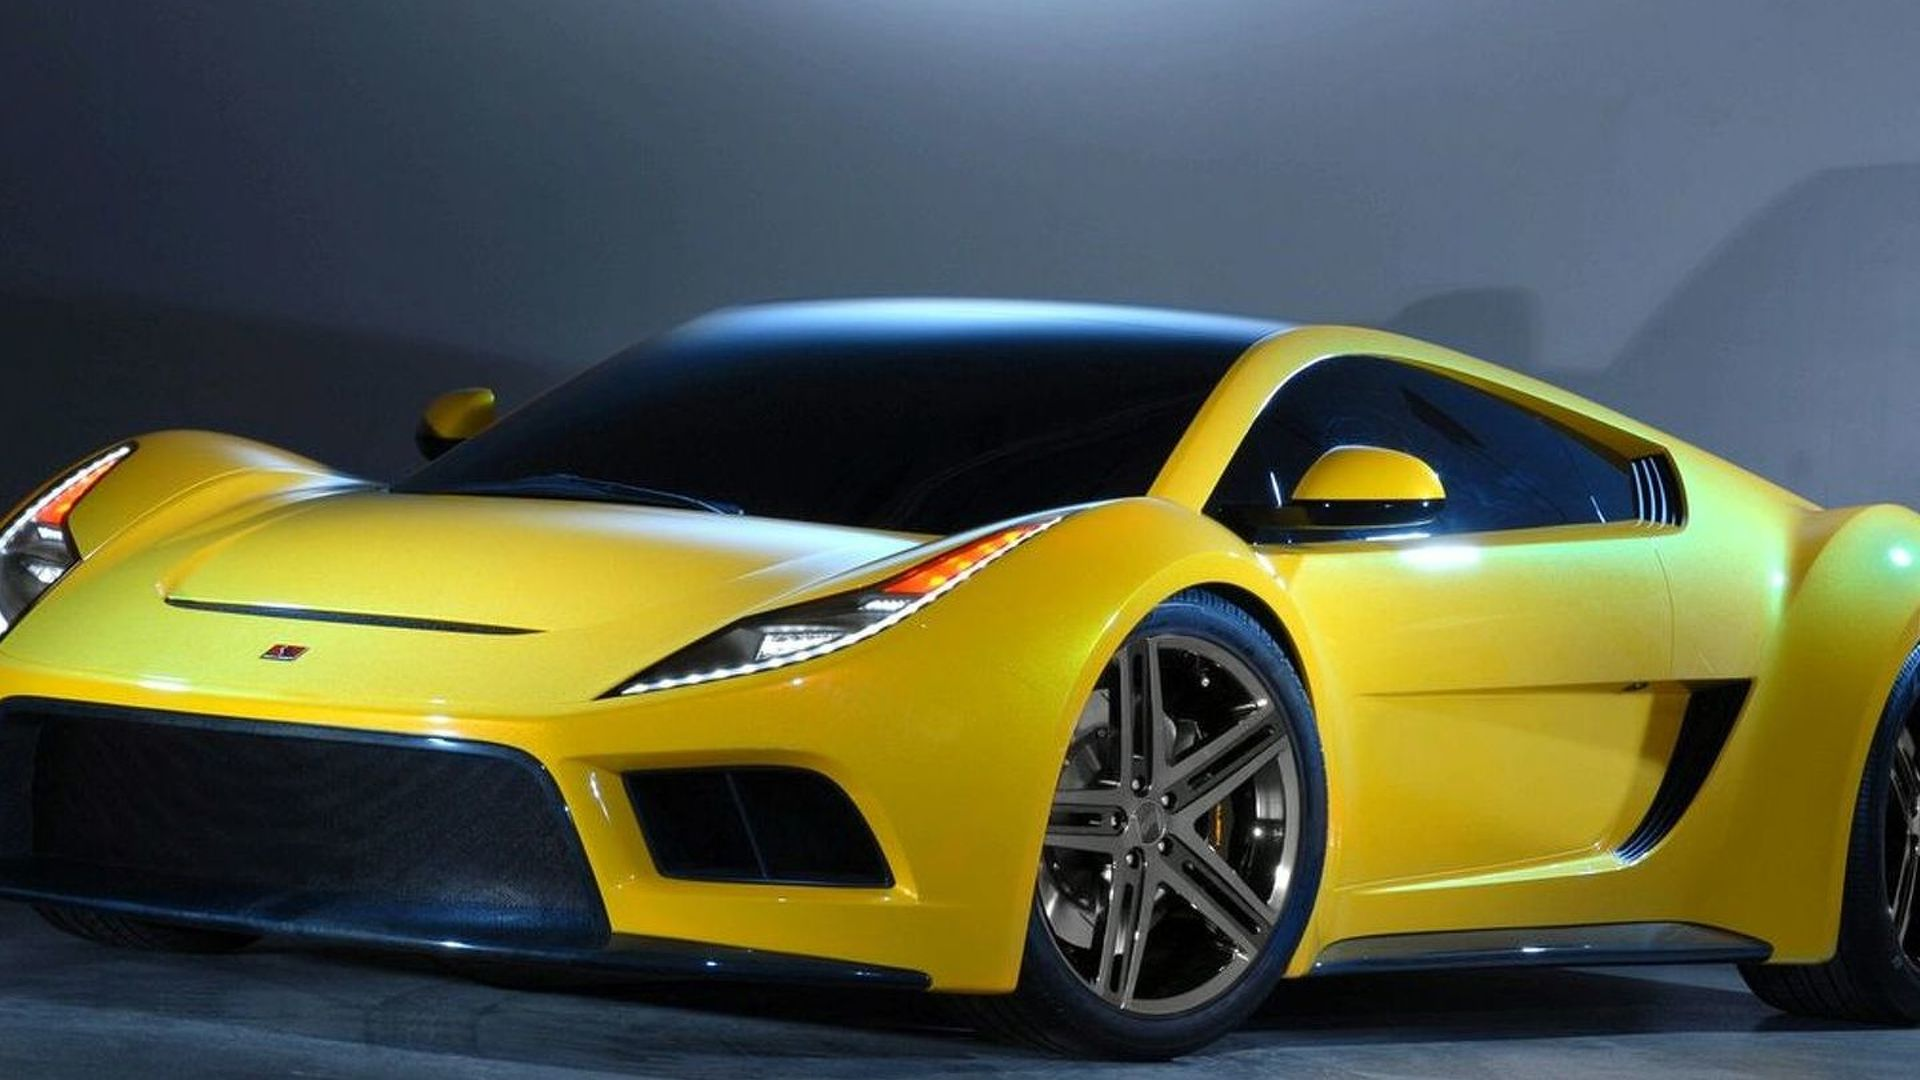 Saleen S7 For Sale >> Saleen S7, S7R and S5S Raptor assets up for sale